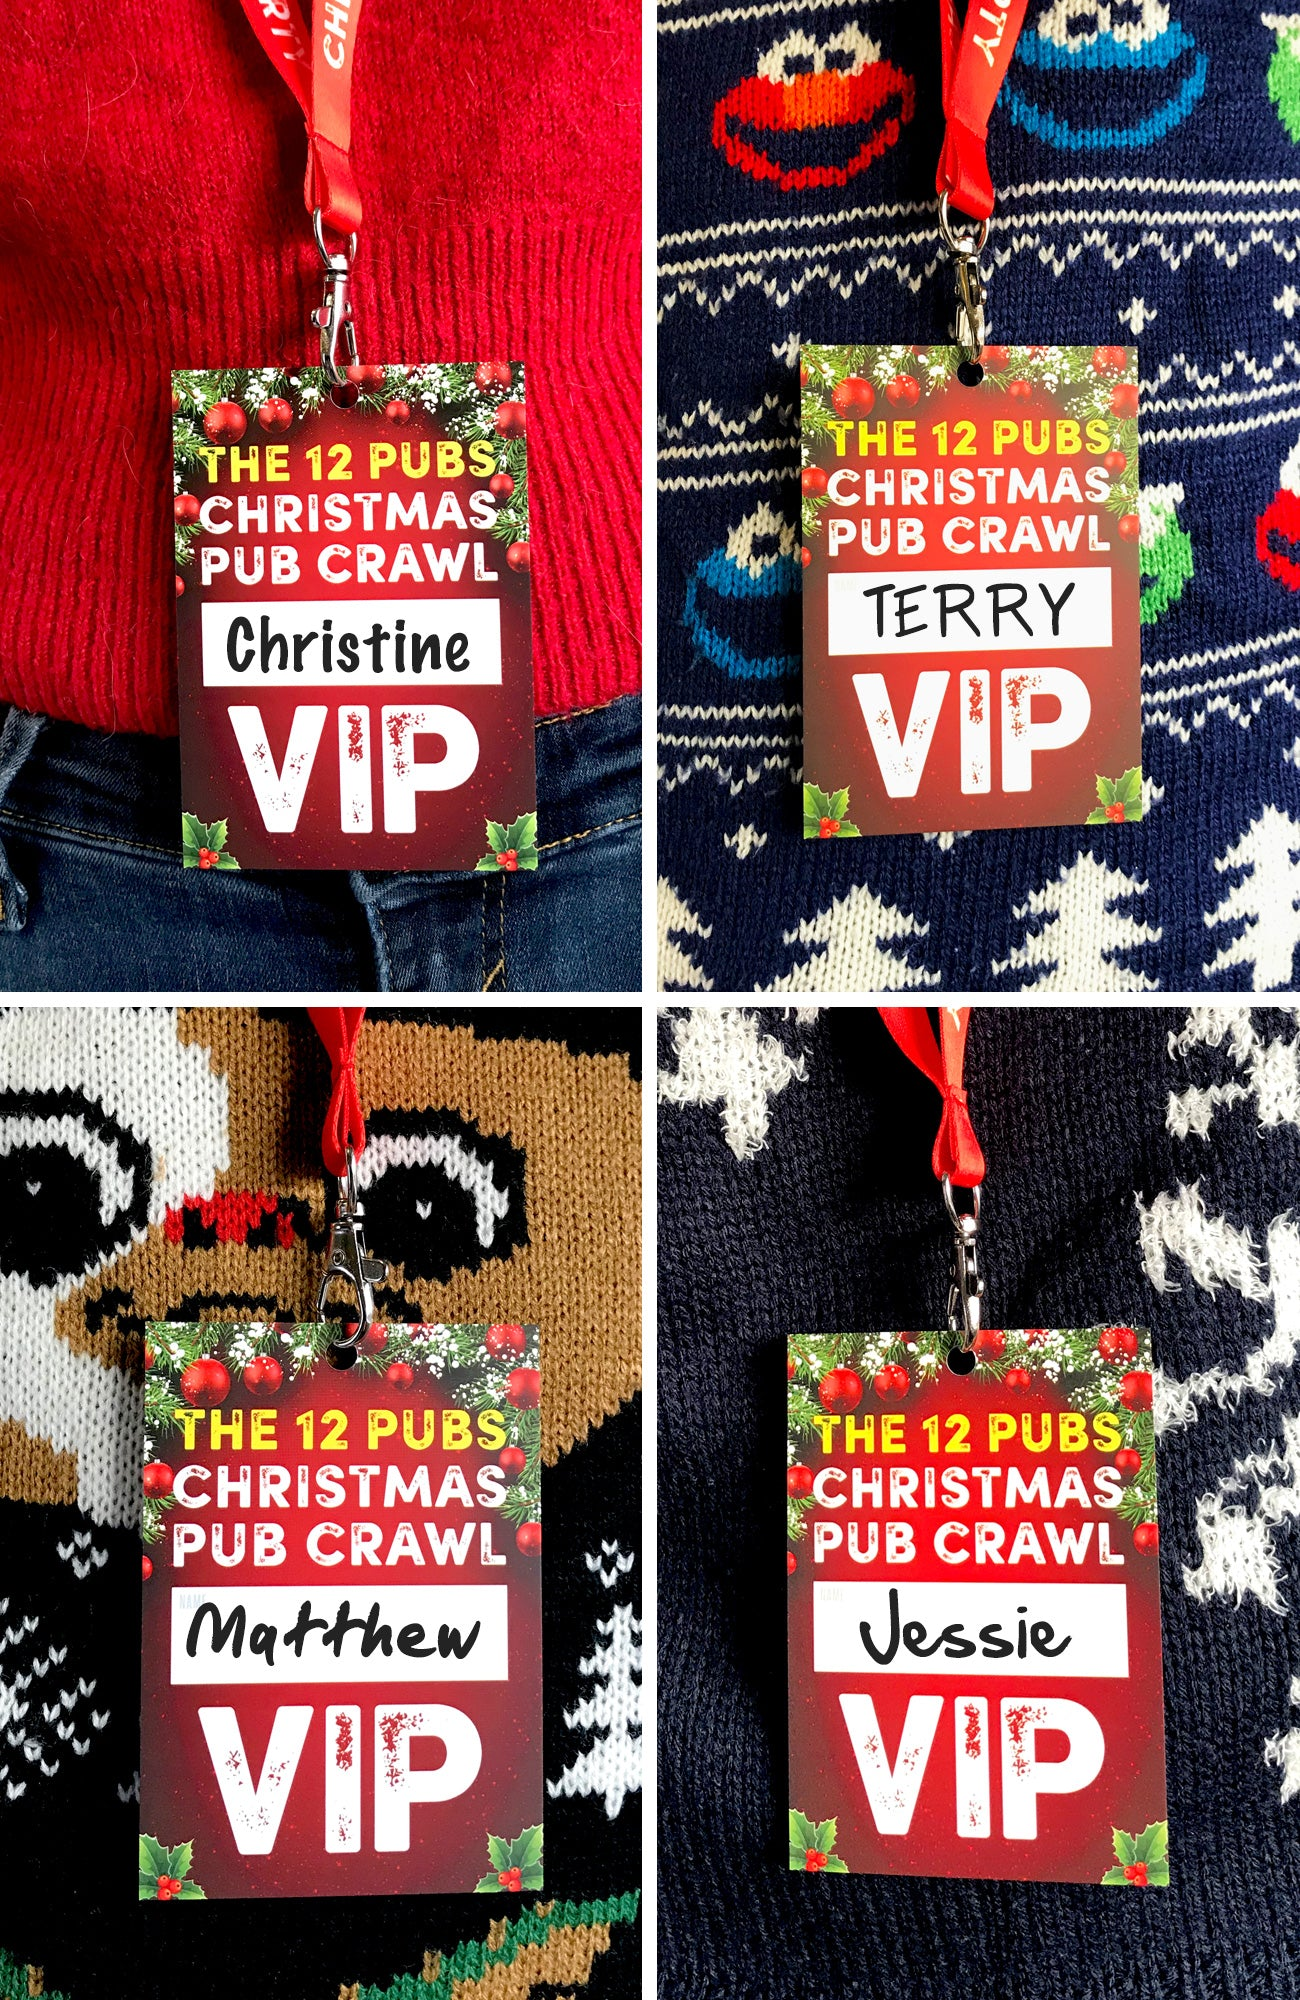 christmas office work party lanyards vip pass